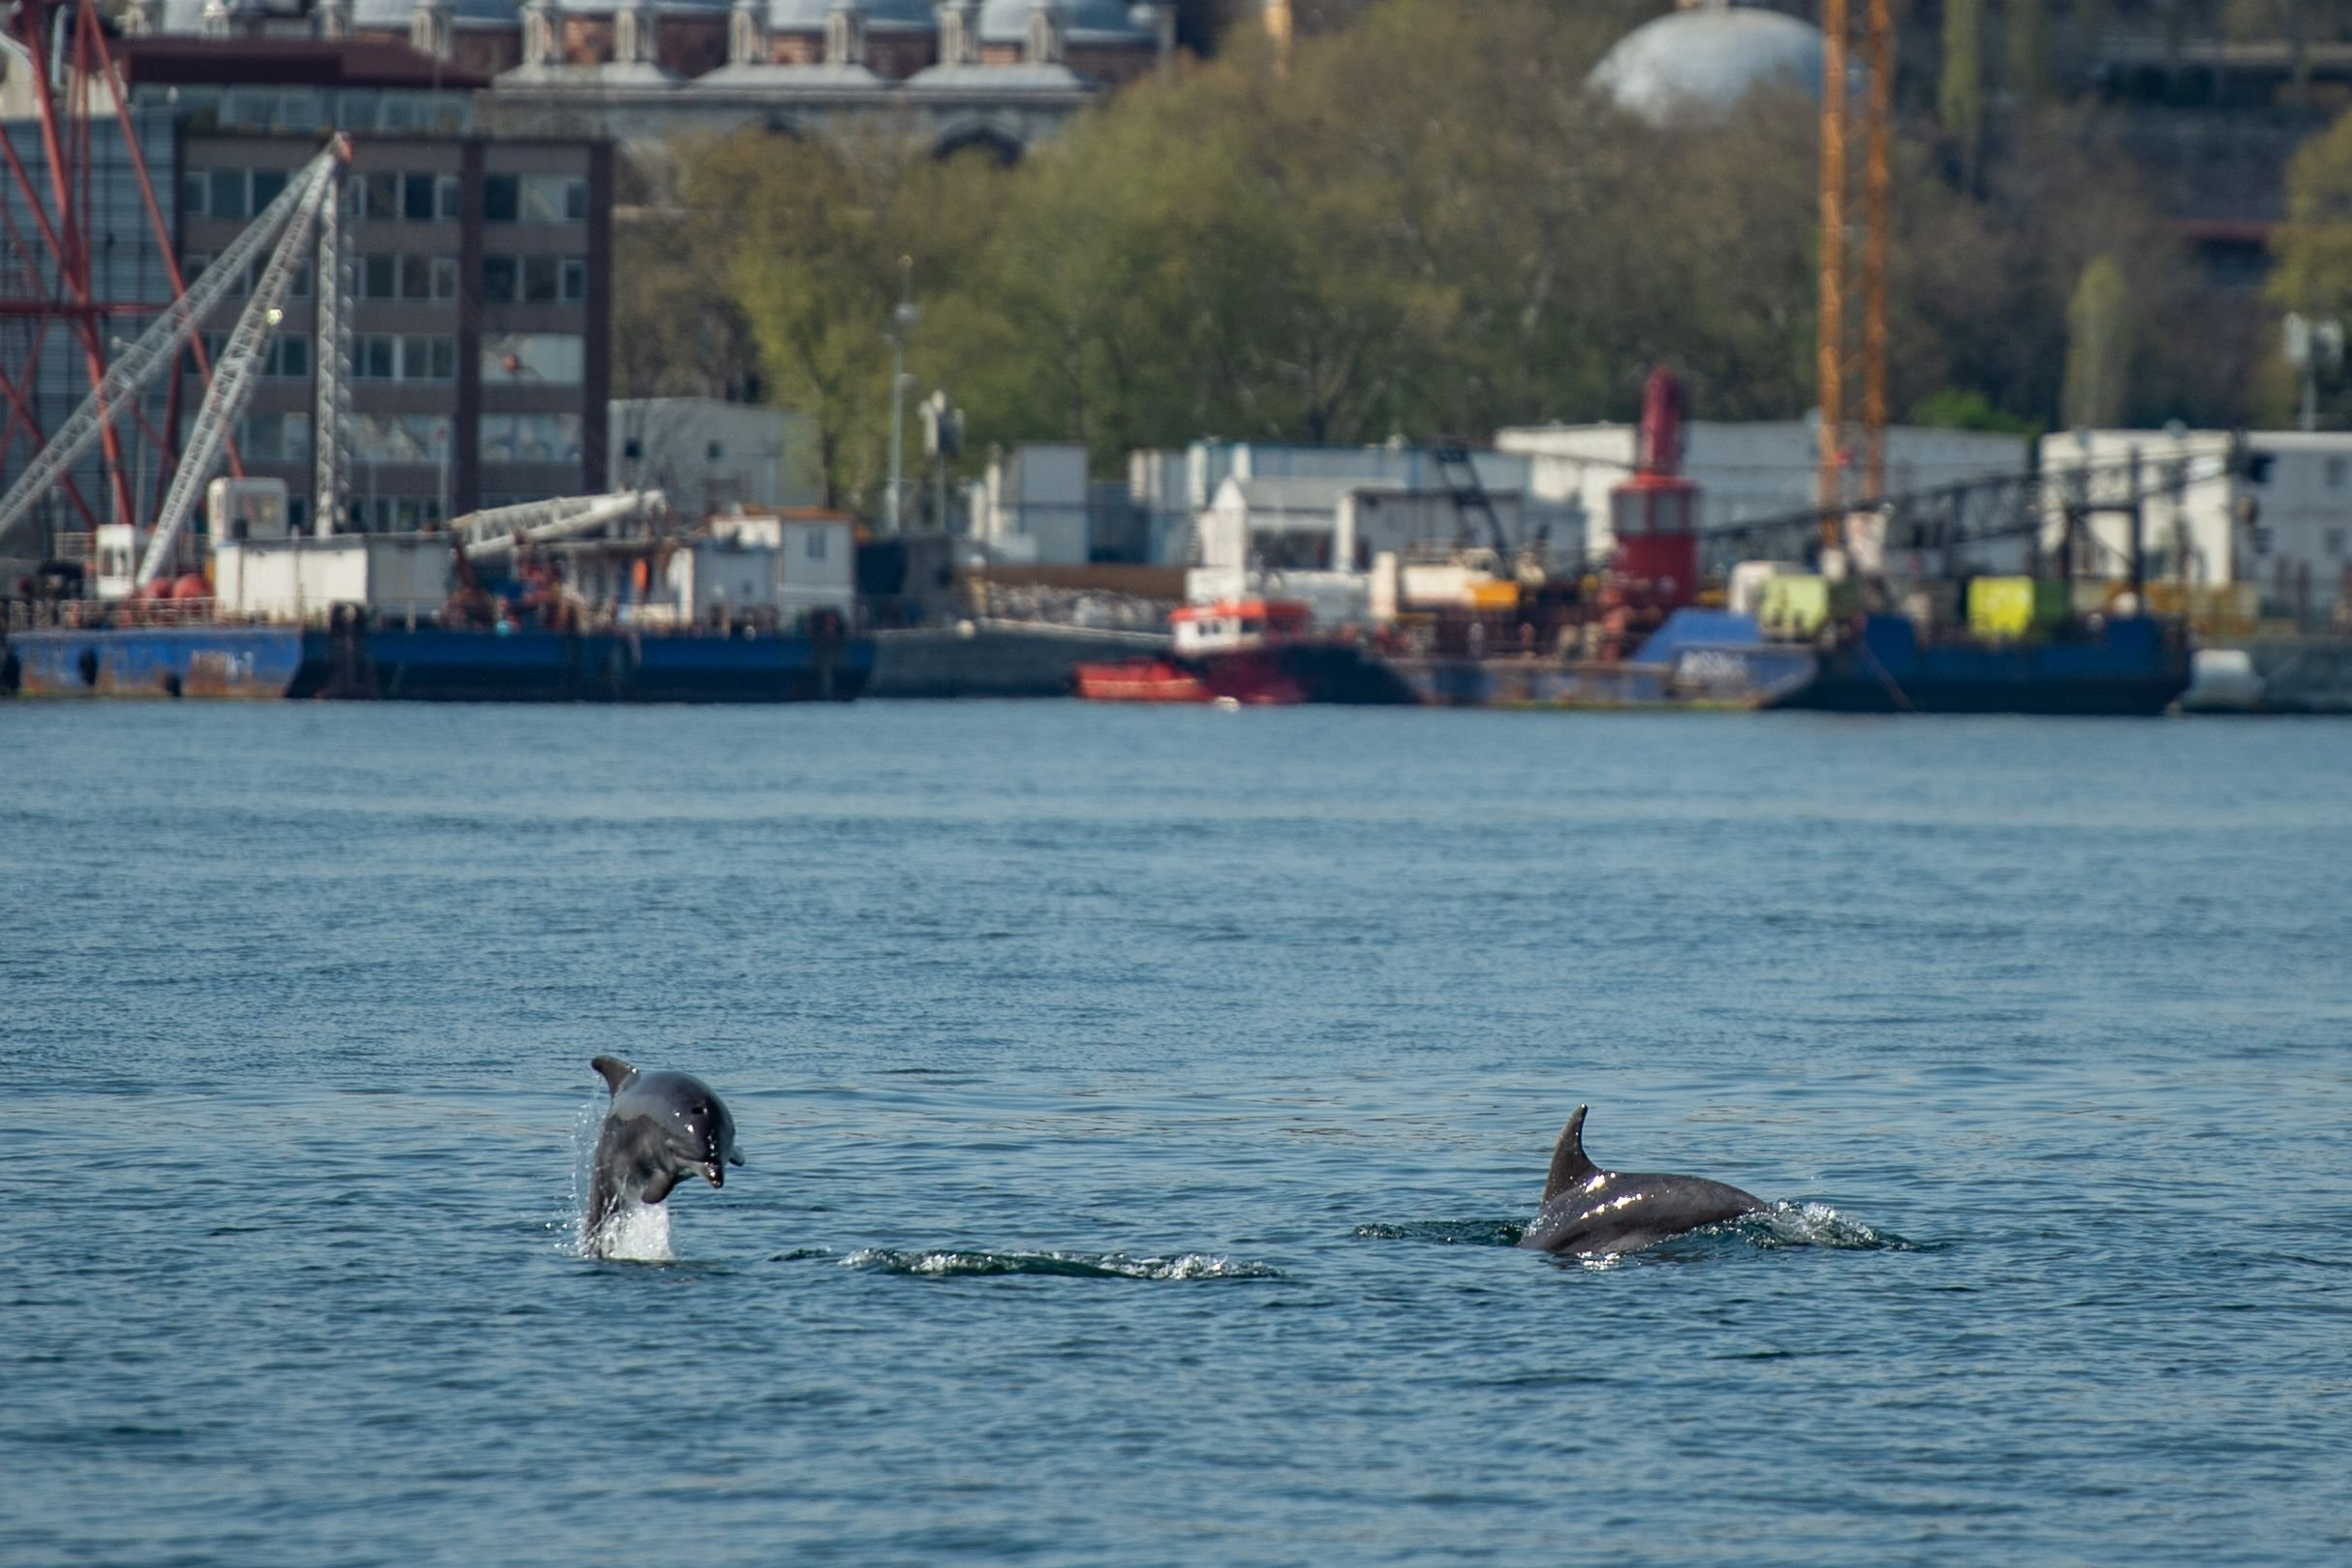 Residents of Istanbul say dolphins are coming further up the Bosphorus than usual